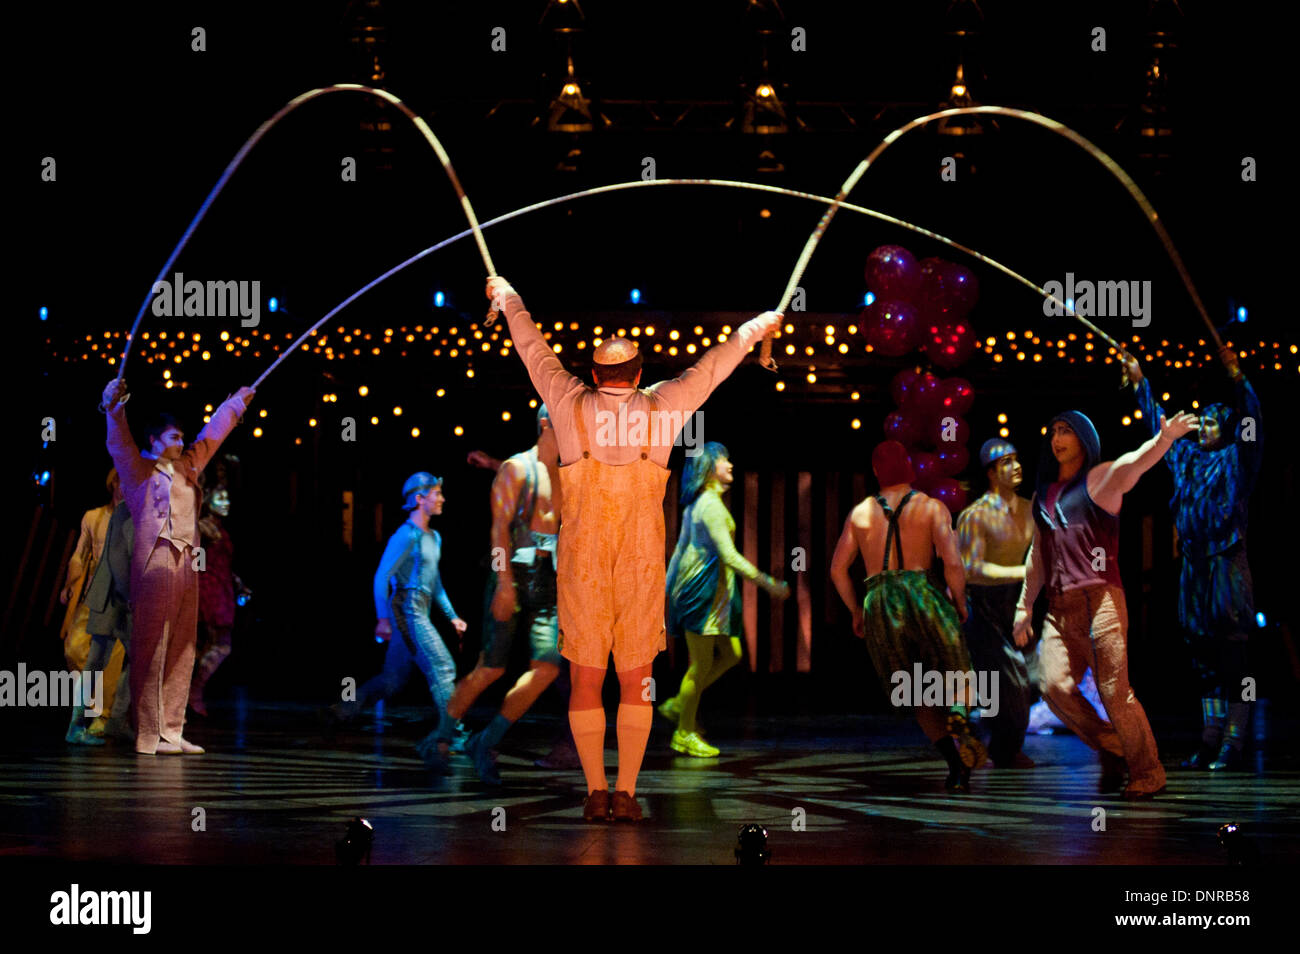 London, UK - 4 Janaury 2014: Notihisa Taguchi, Kata Banhegyi and House Troupe perform during the Skipping Ropes act during the dress rehearsal of Quidam at the Royal Albert Hall. (available only for editorial coverage of the Production) Credit:  Piero Cruciatti/Alamy Live News - Stock Image